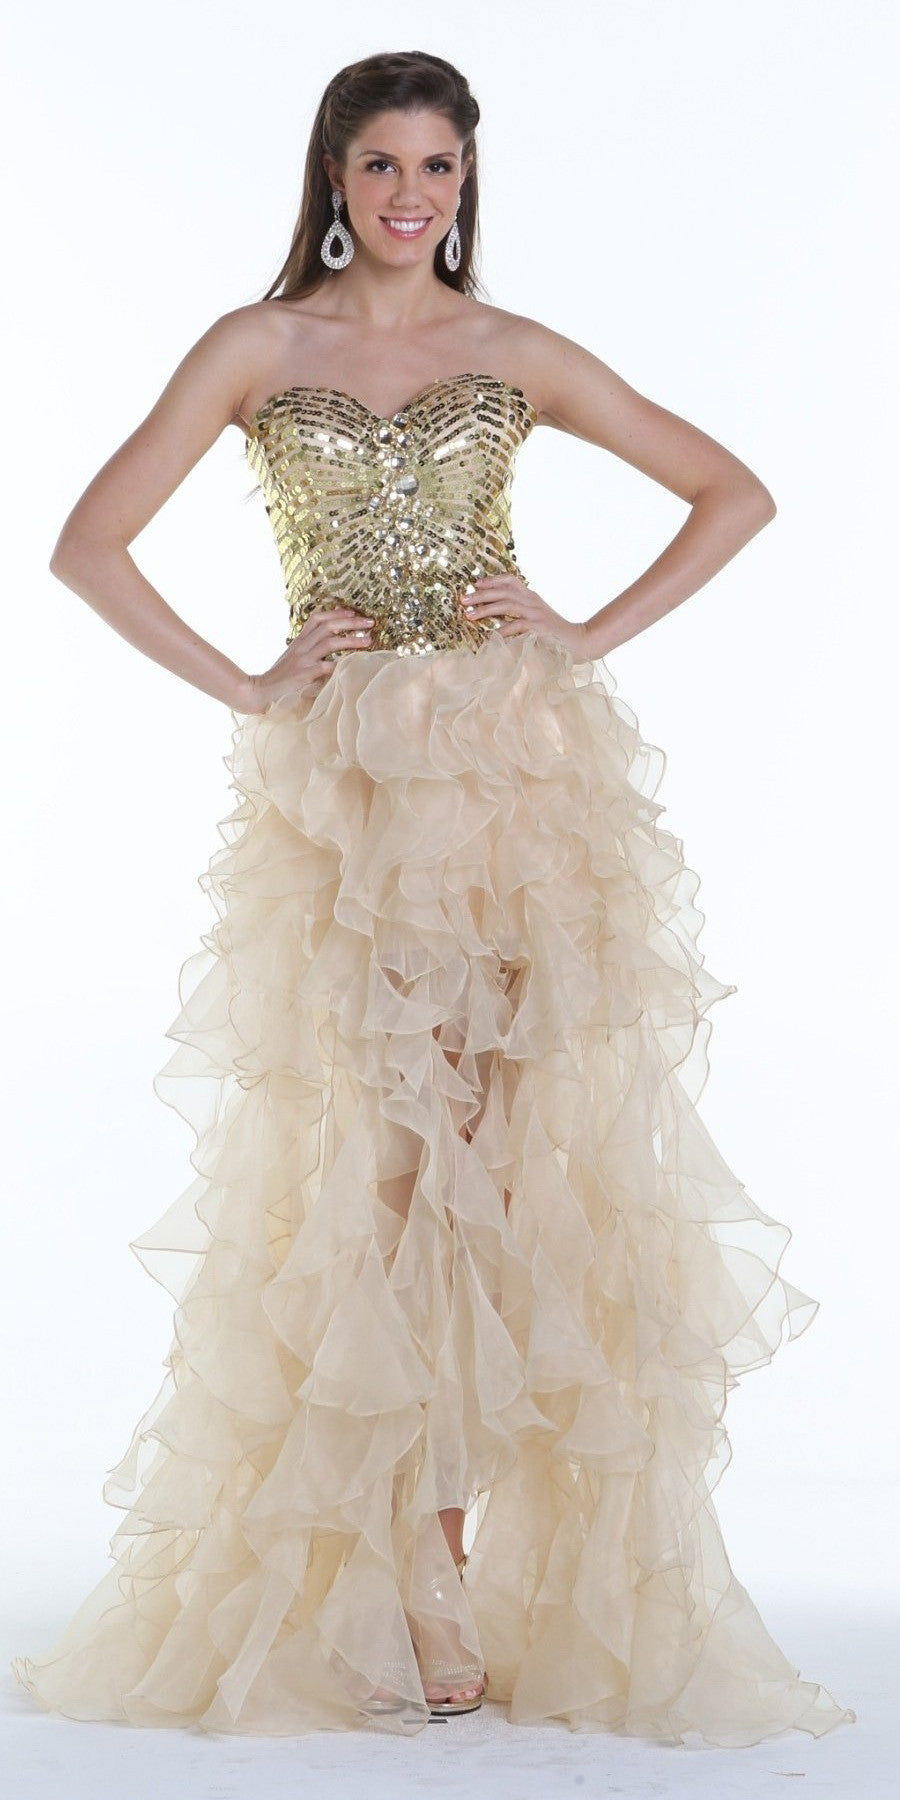 ON SPECIAL LIMITED STOCK - Stunning Strapless Nude High Low Gown Sequins Top Organza Skirt